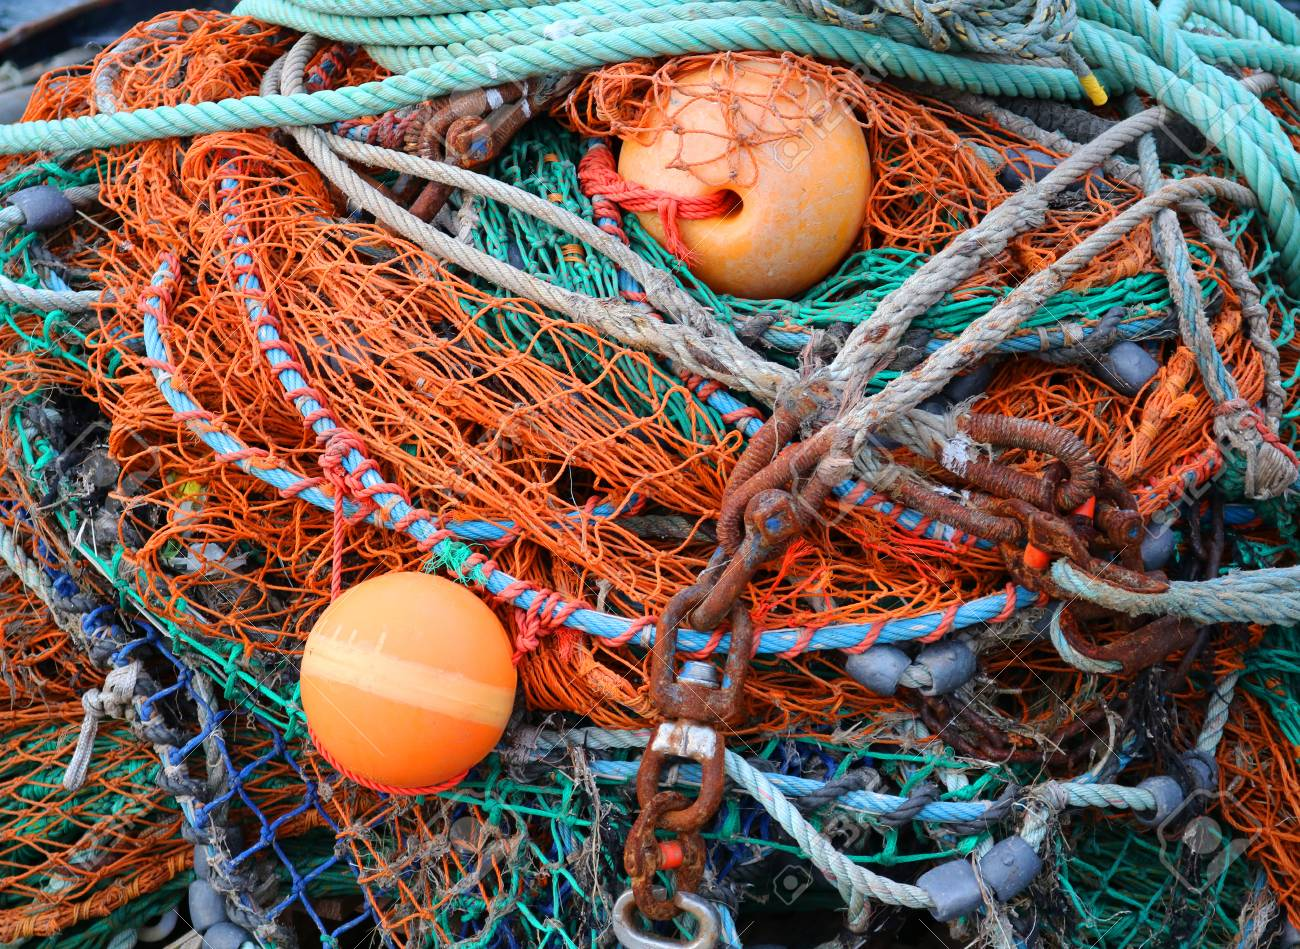 Pile Of Colorful Fishing Nets And Chains Stock Photo, Picture And ...